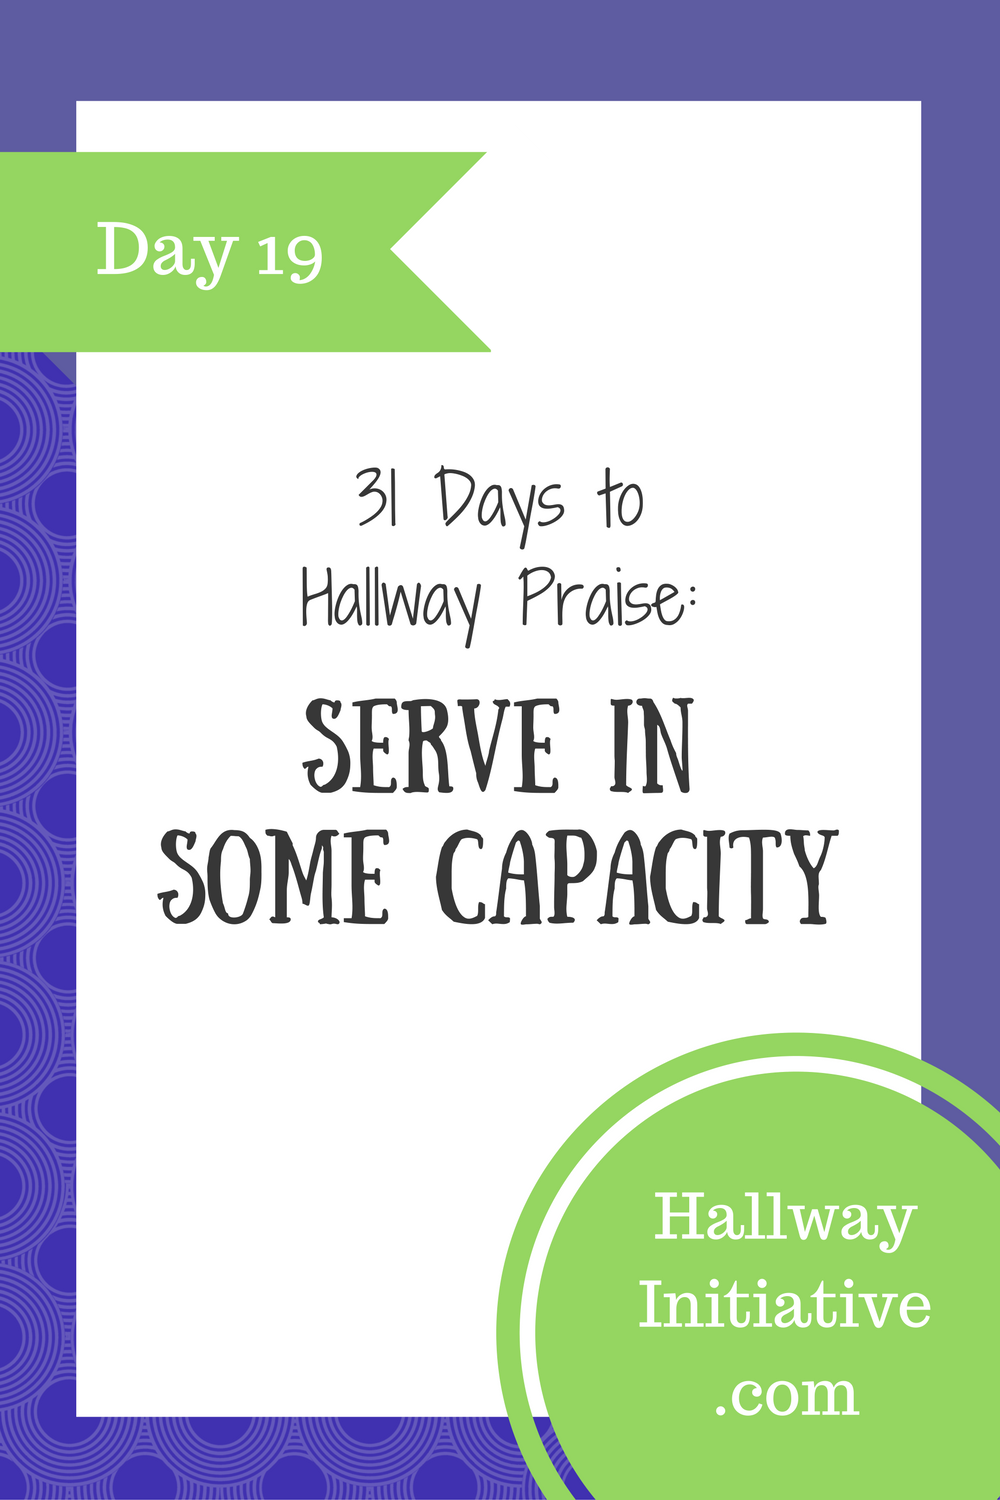 Day 19: serve in some capacity